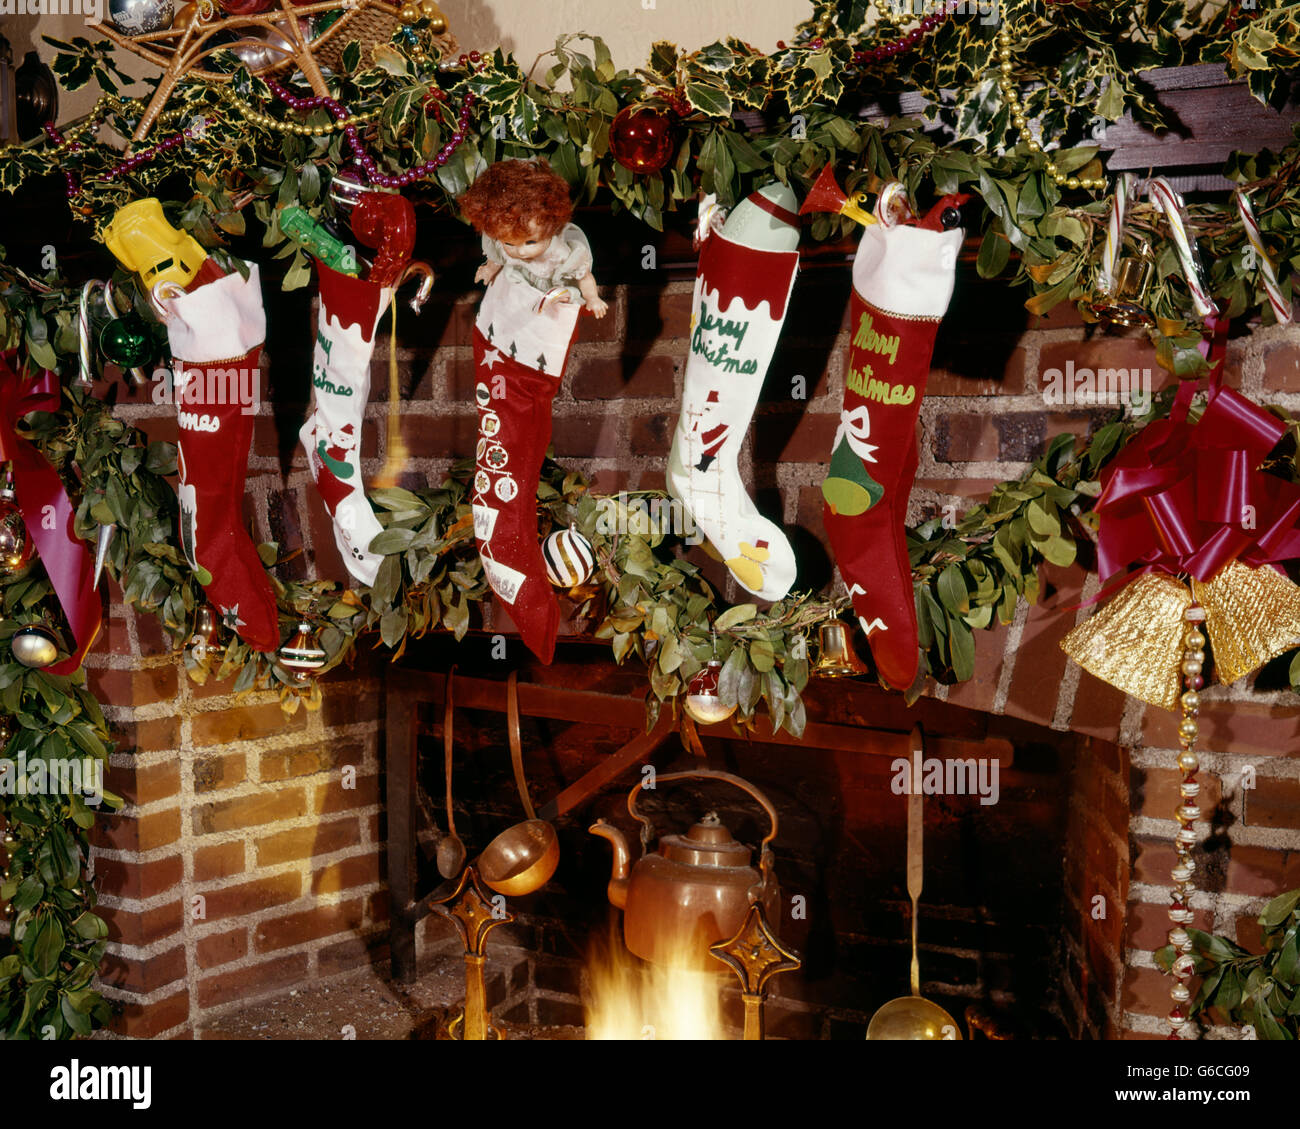 Genial 1960s CHRISTMAS STOCKINGS HANGING ON FIREPLACE MANTLE WITH ...